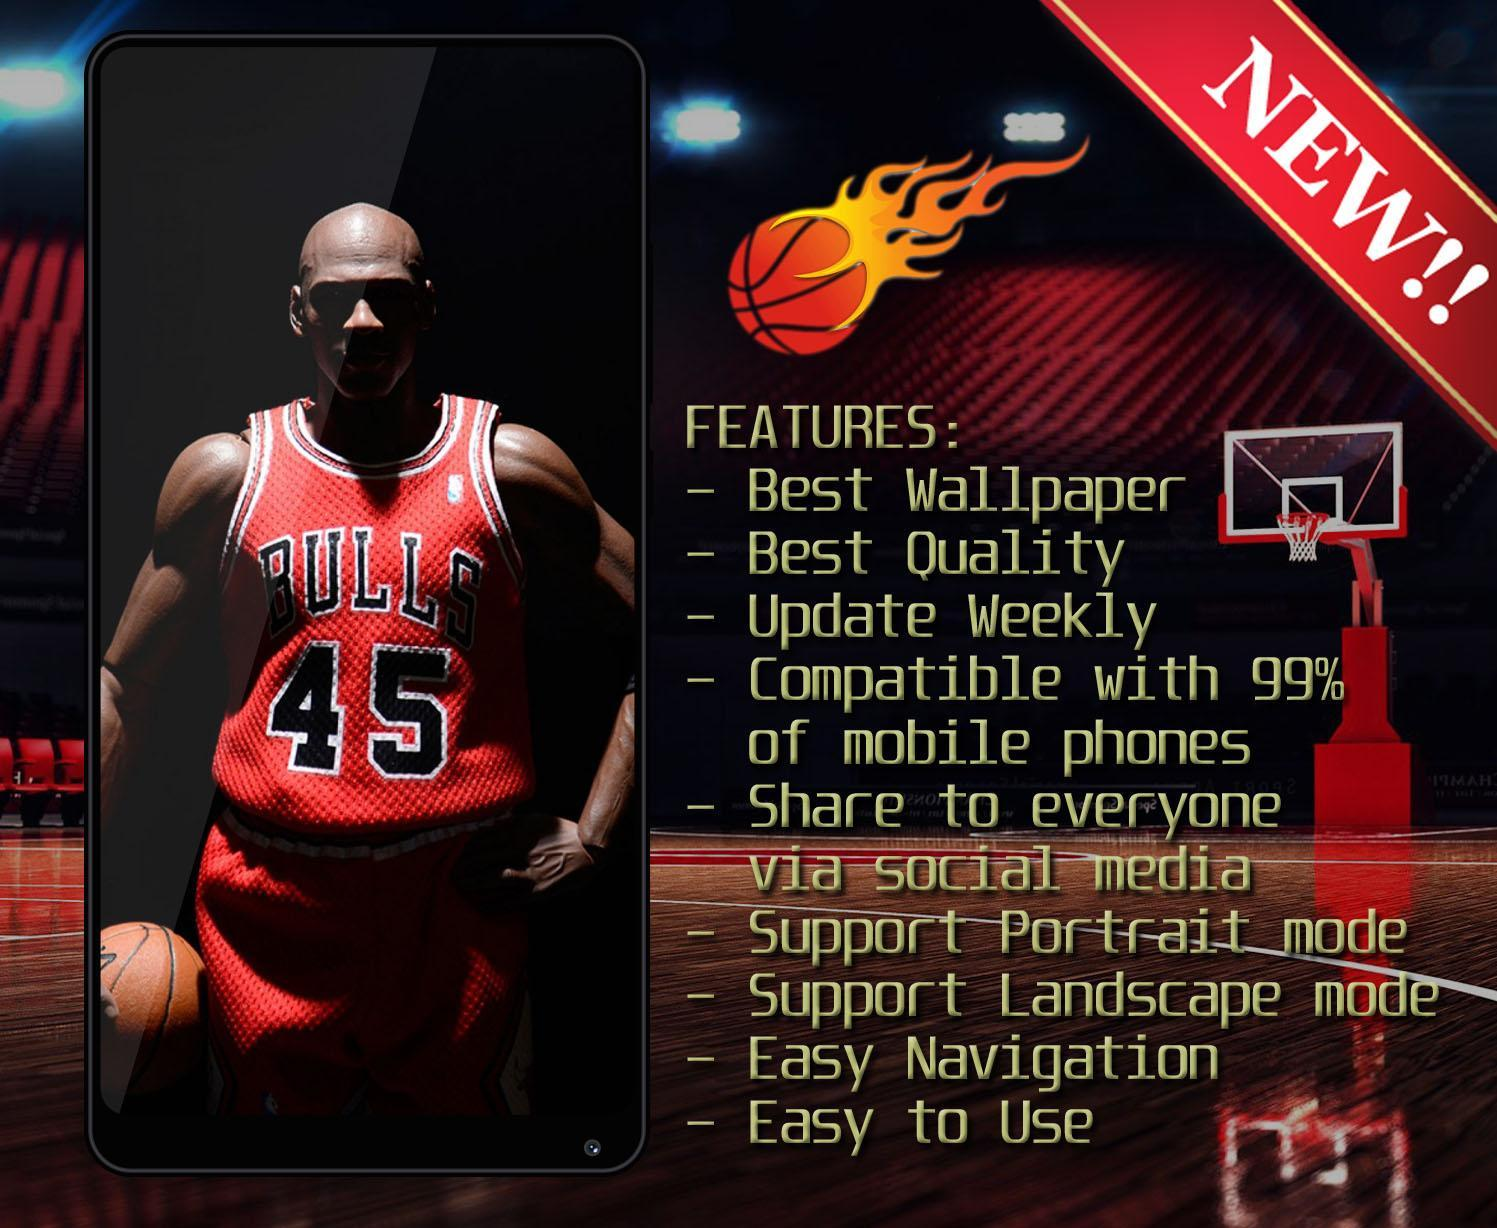 Michael Jordan Wallpaper Hd 4k For Android Apk Download